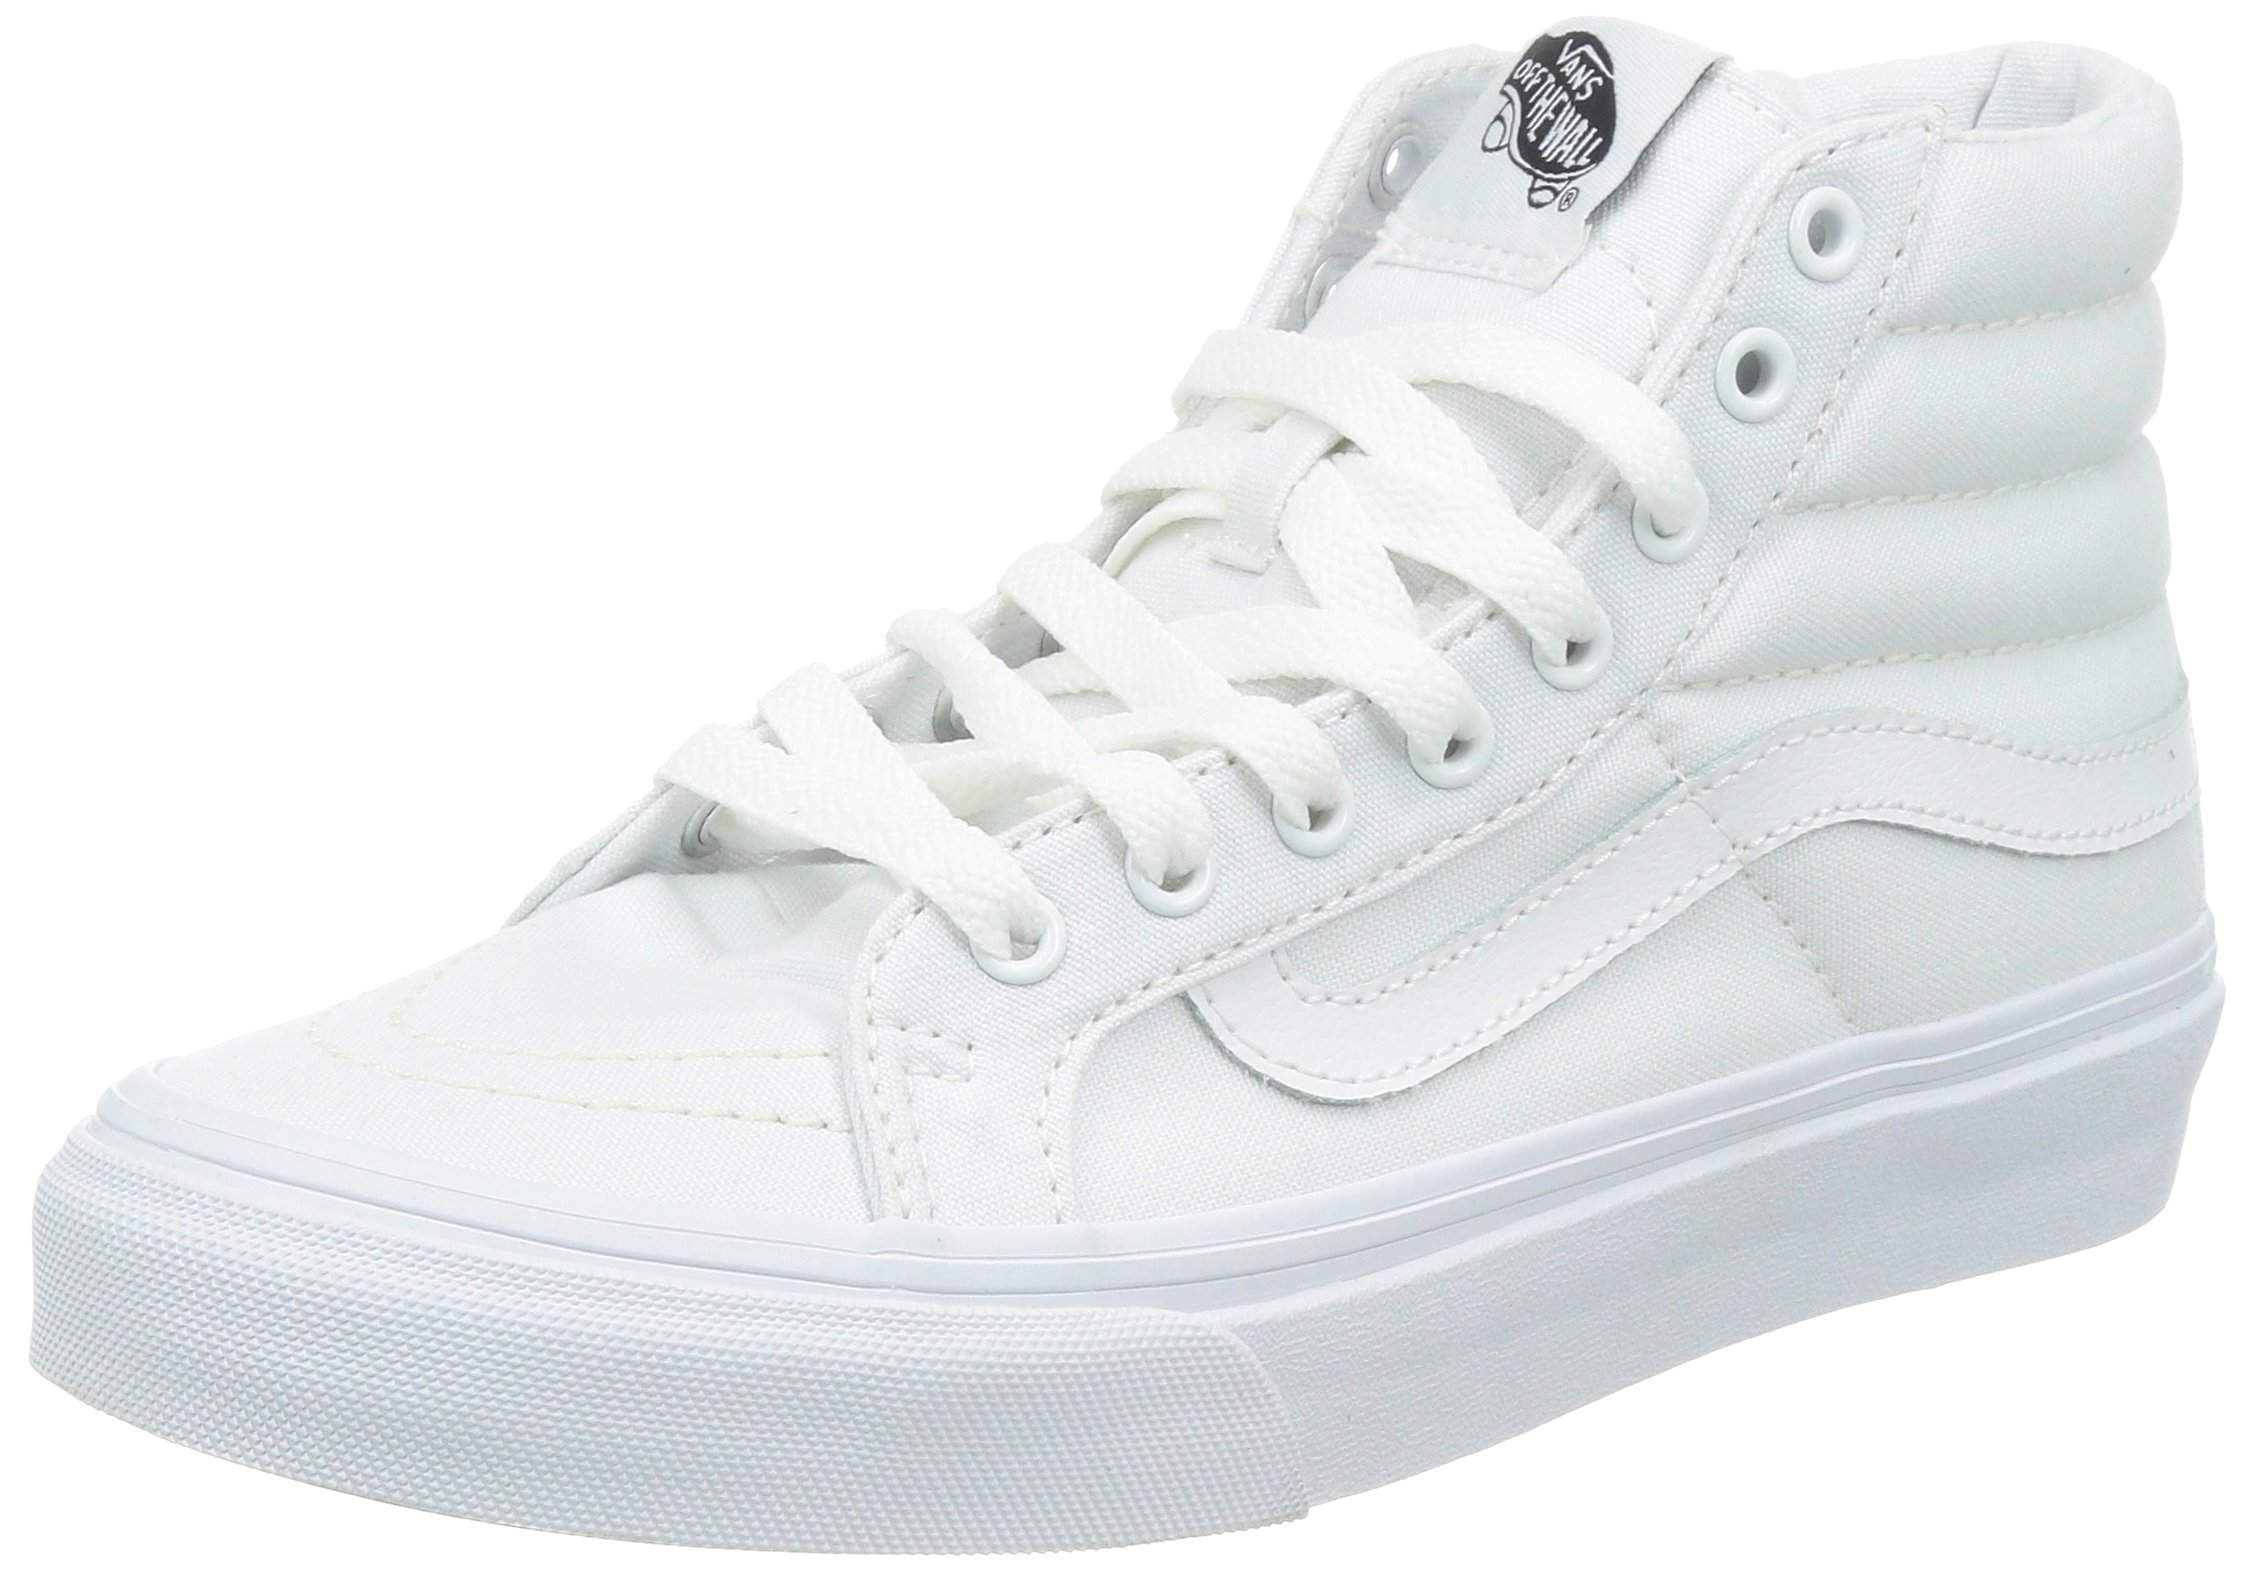 06db55f7bf Galleon - Vans Unisex Sk8-Hi Slim (Canvas) True White VN000XH7L5R Mens 7.5